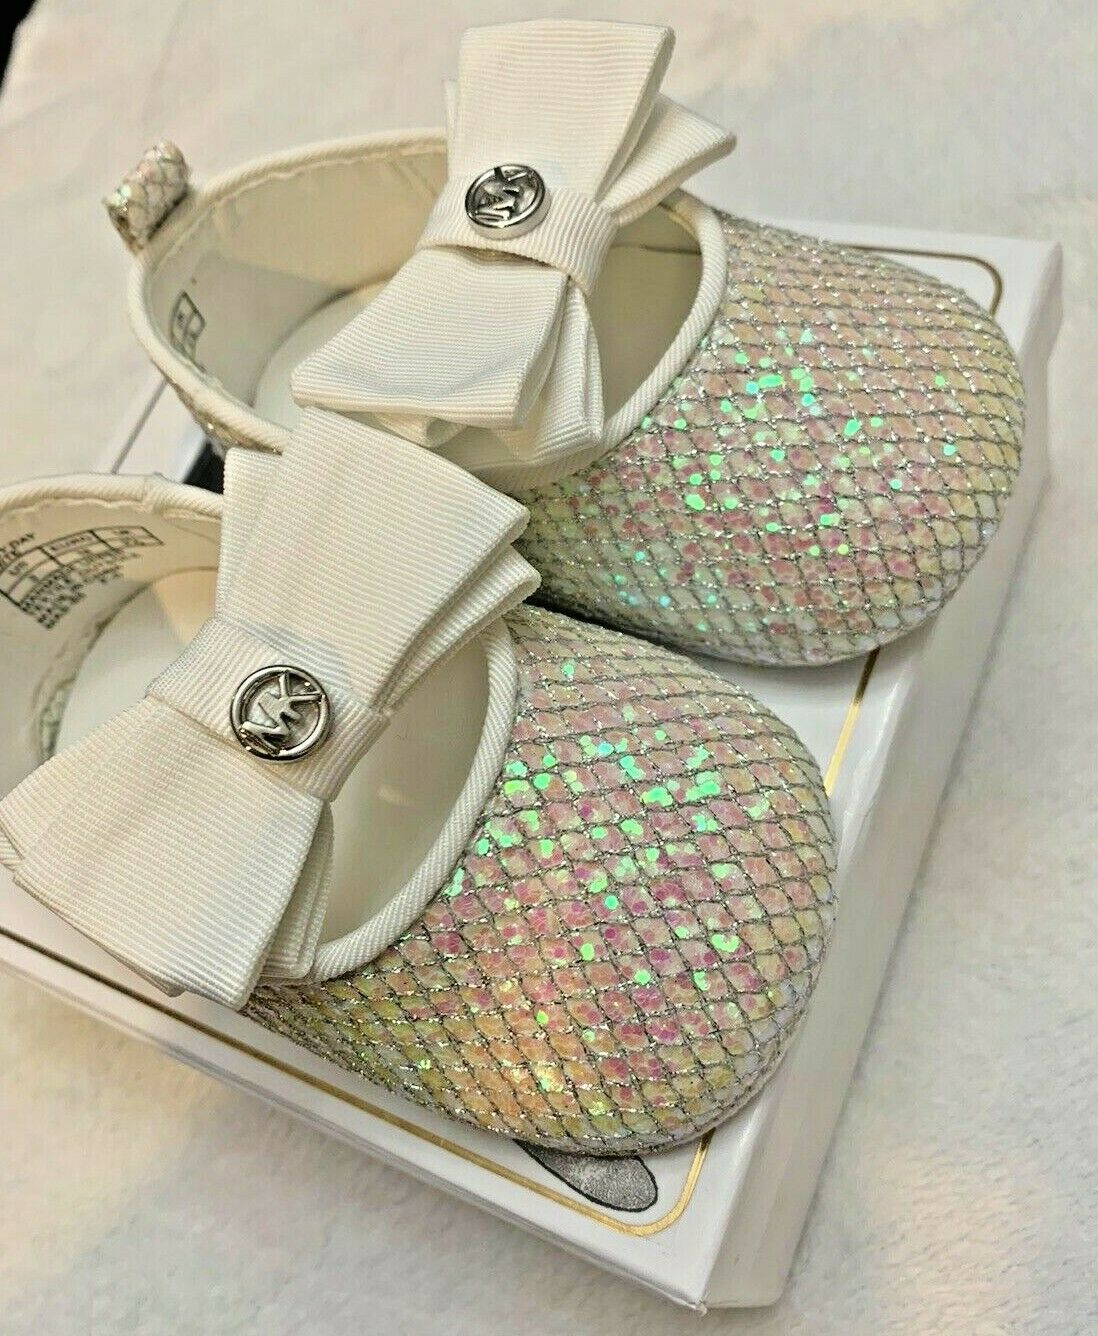 MOIKA Girls Dance Shoes for 3.5-8.5Years Old Kids Baby Infant Toddler Girls Sequins Bling Bowknot Single Shoes Wedding Party Prom Ballroom Latin Shoes Sandals Princess Shoes Dancing Shoes